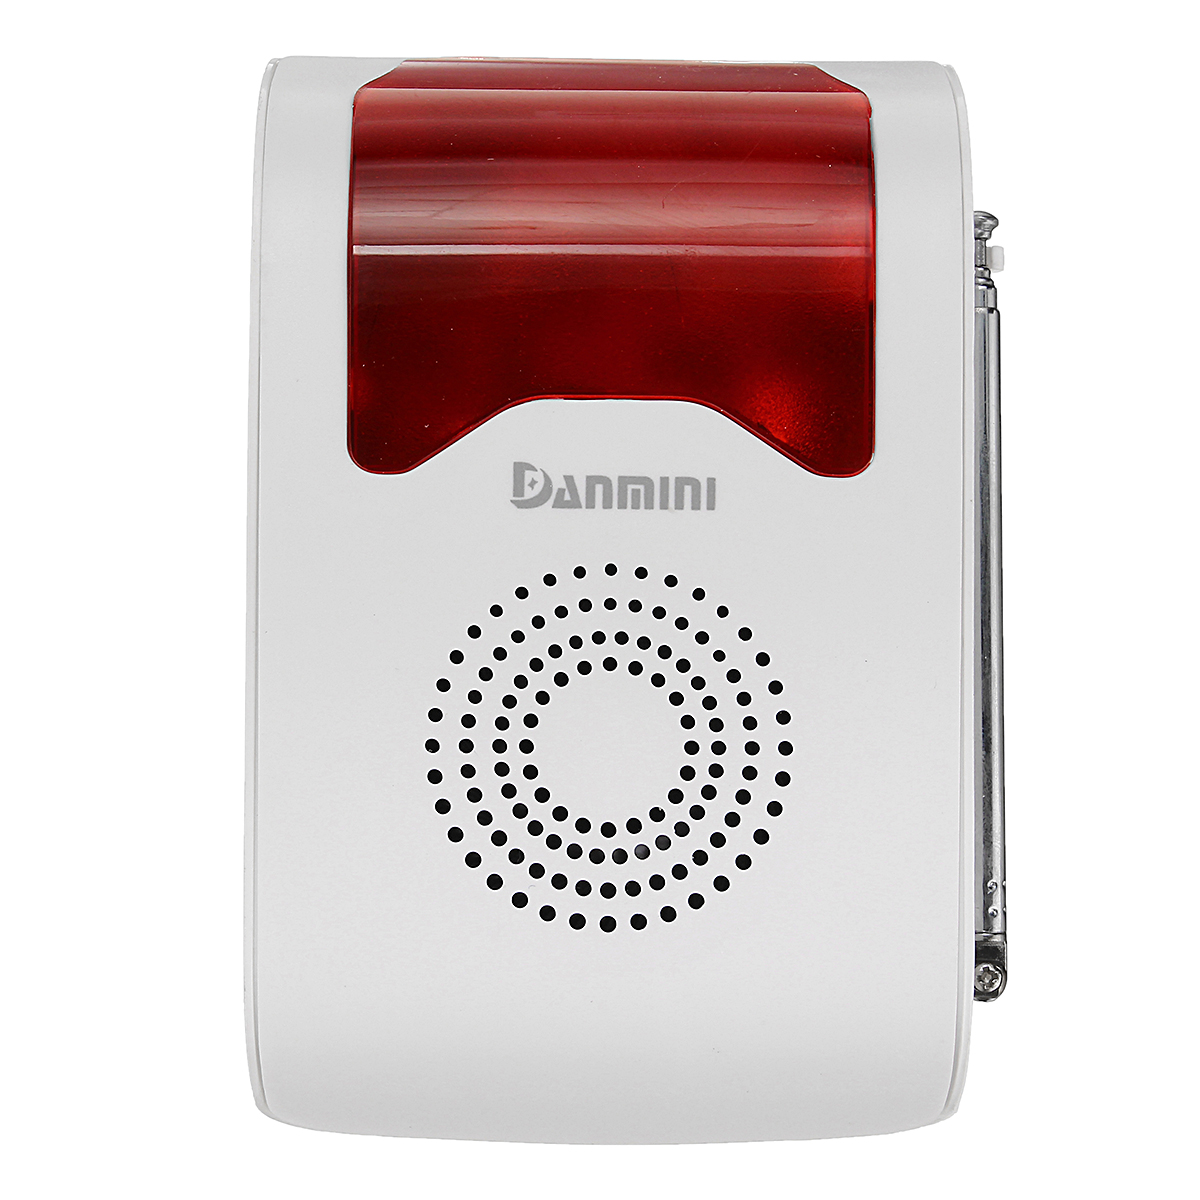 Remote Control Wireless Ir Infrared Motion Sensor Home For Sale